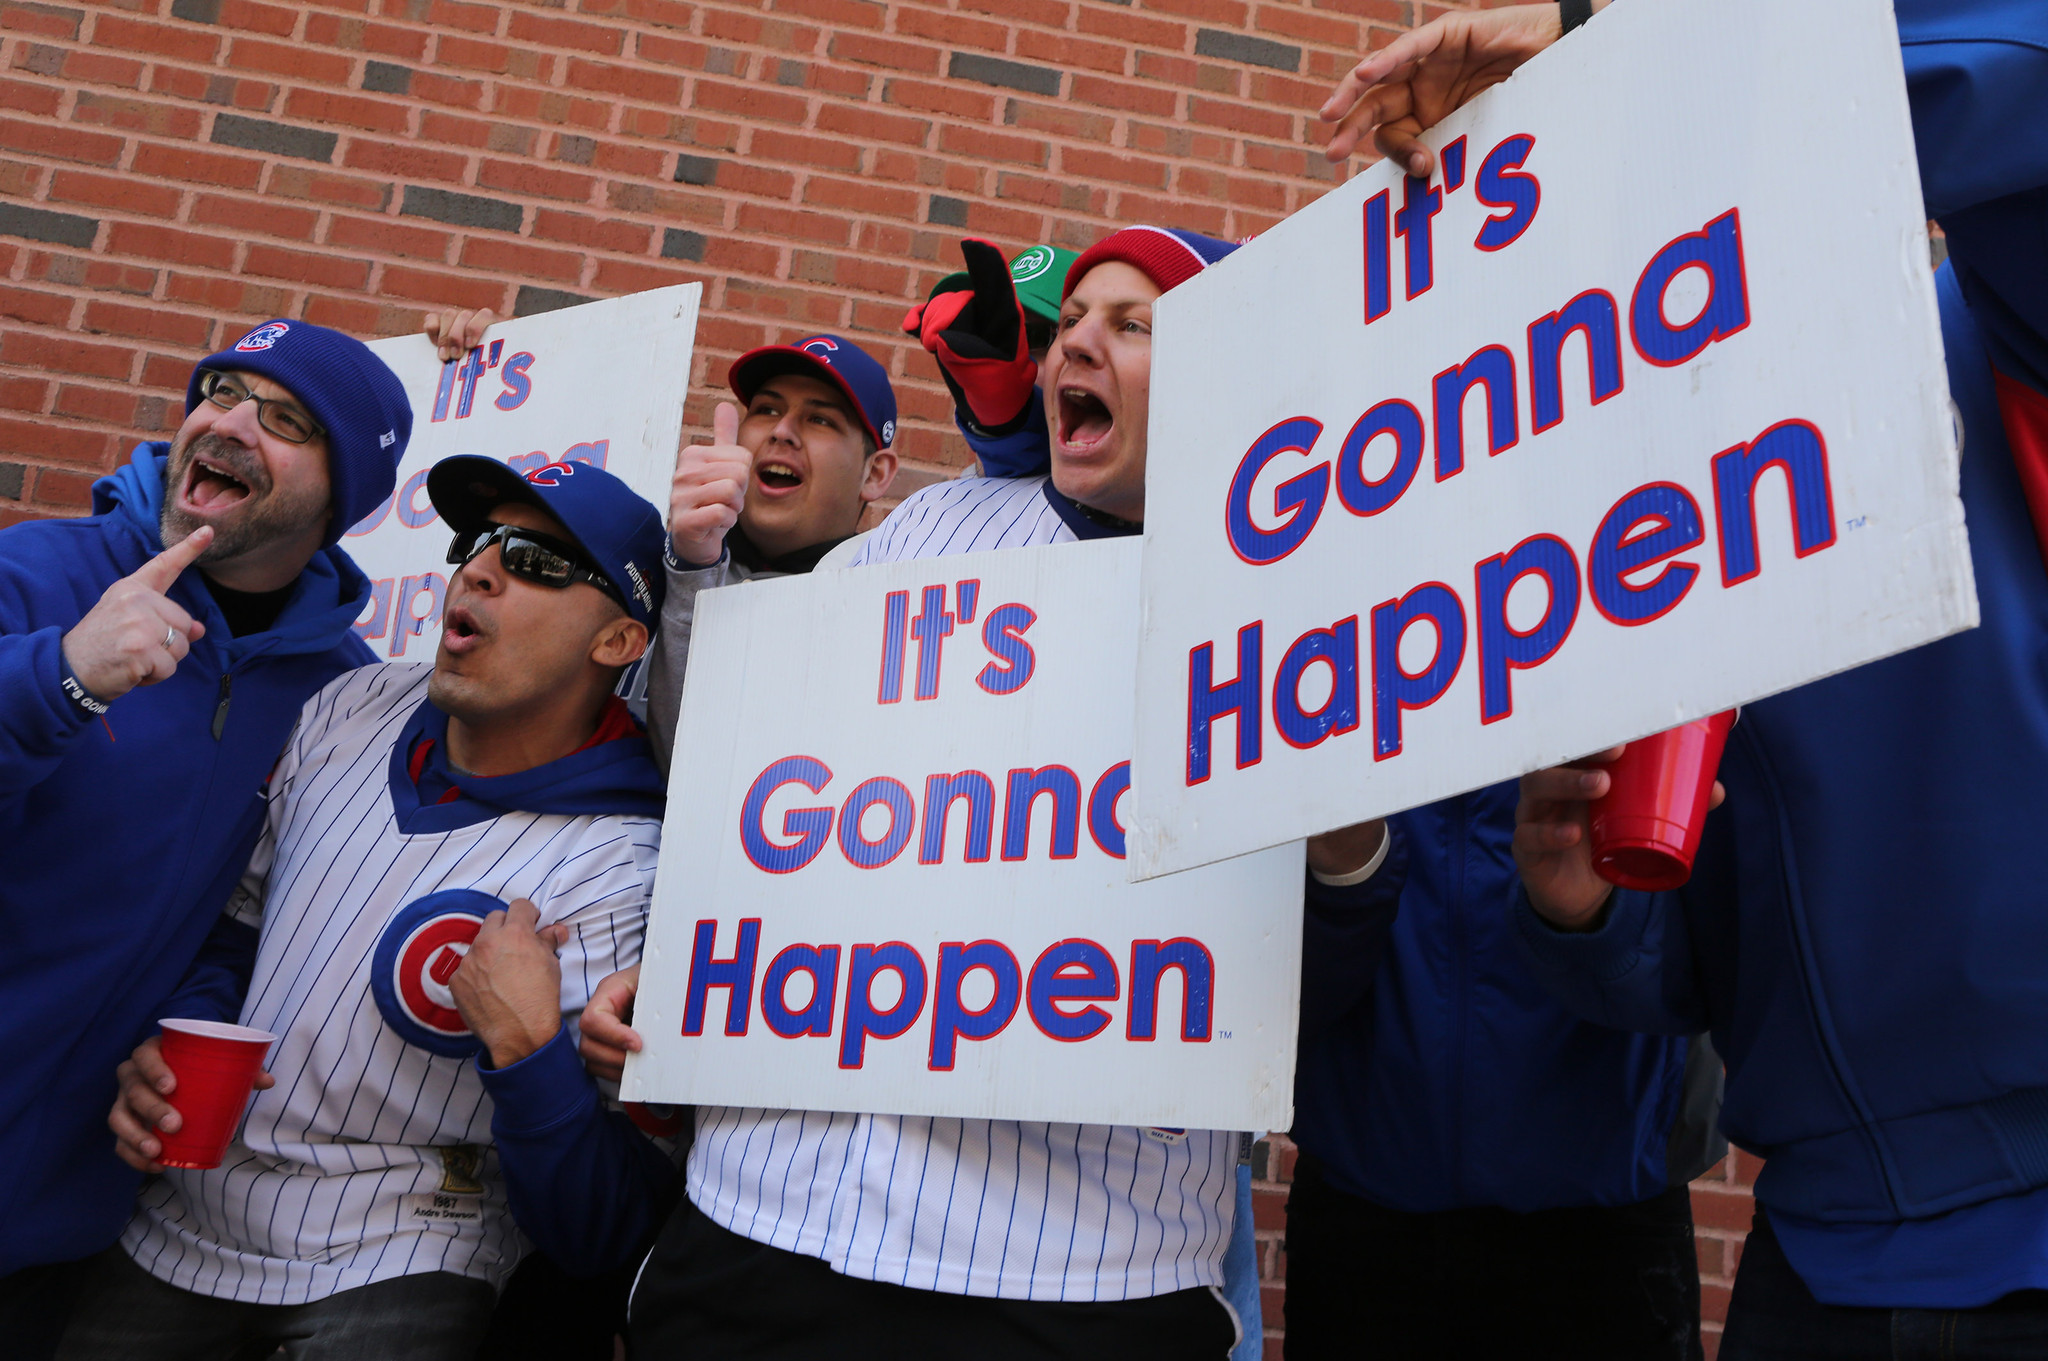 Cubs fans exuberant but cautious at home opener - Chicago ...